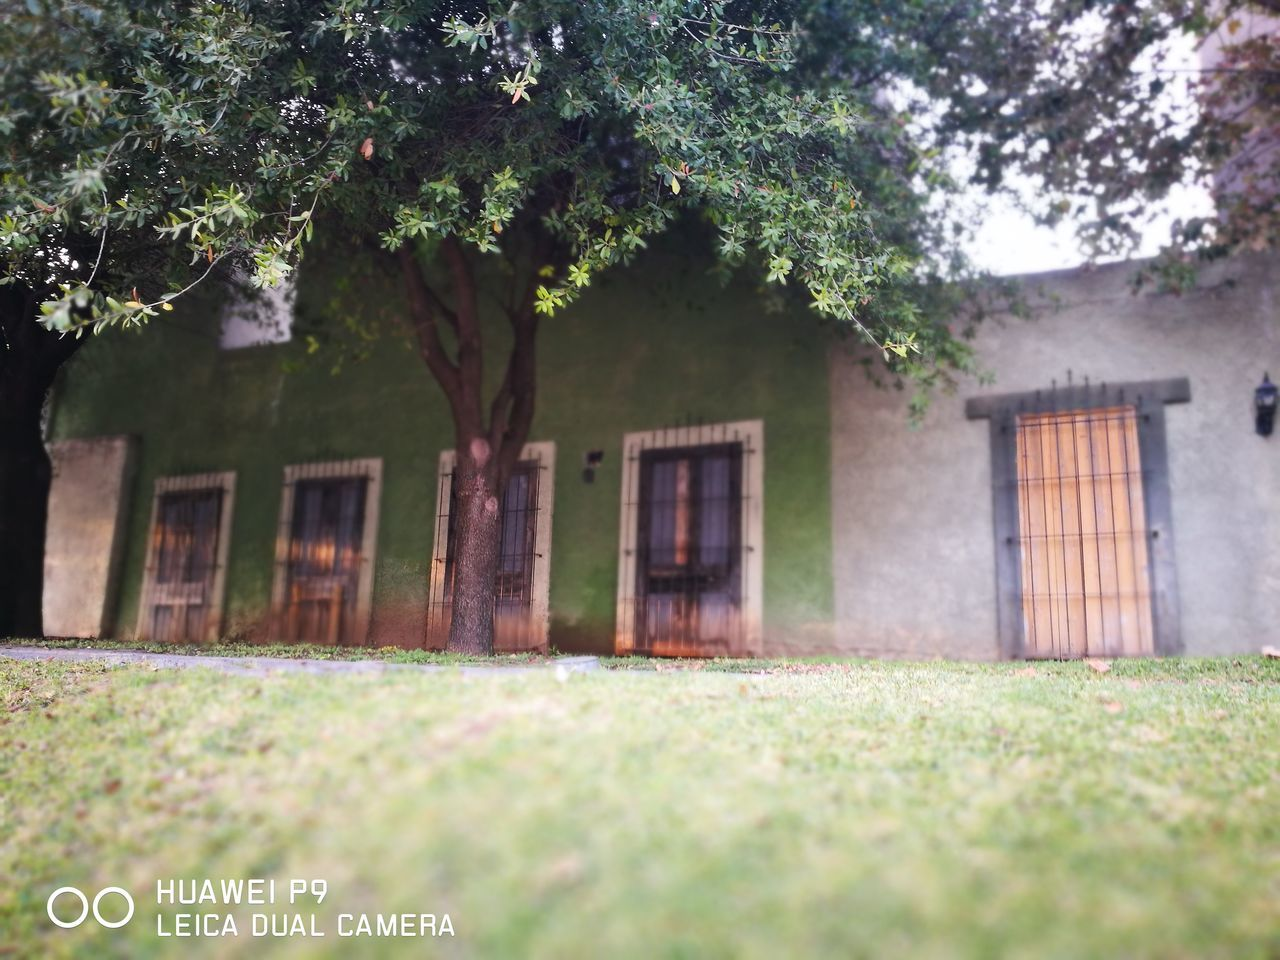 Casona Antigua. Tree Plant Growth No People Flower Green Color Nature Outdoors Grass Built Structure Architecture Day